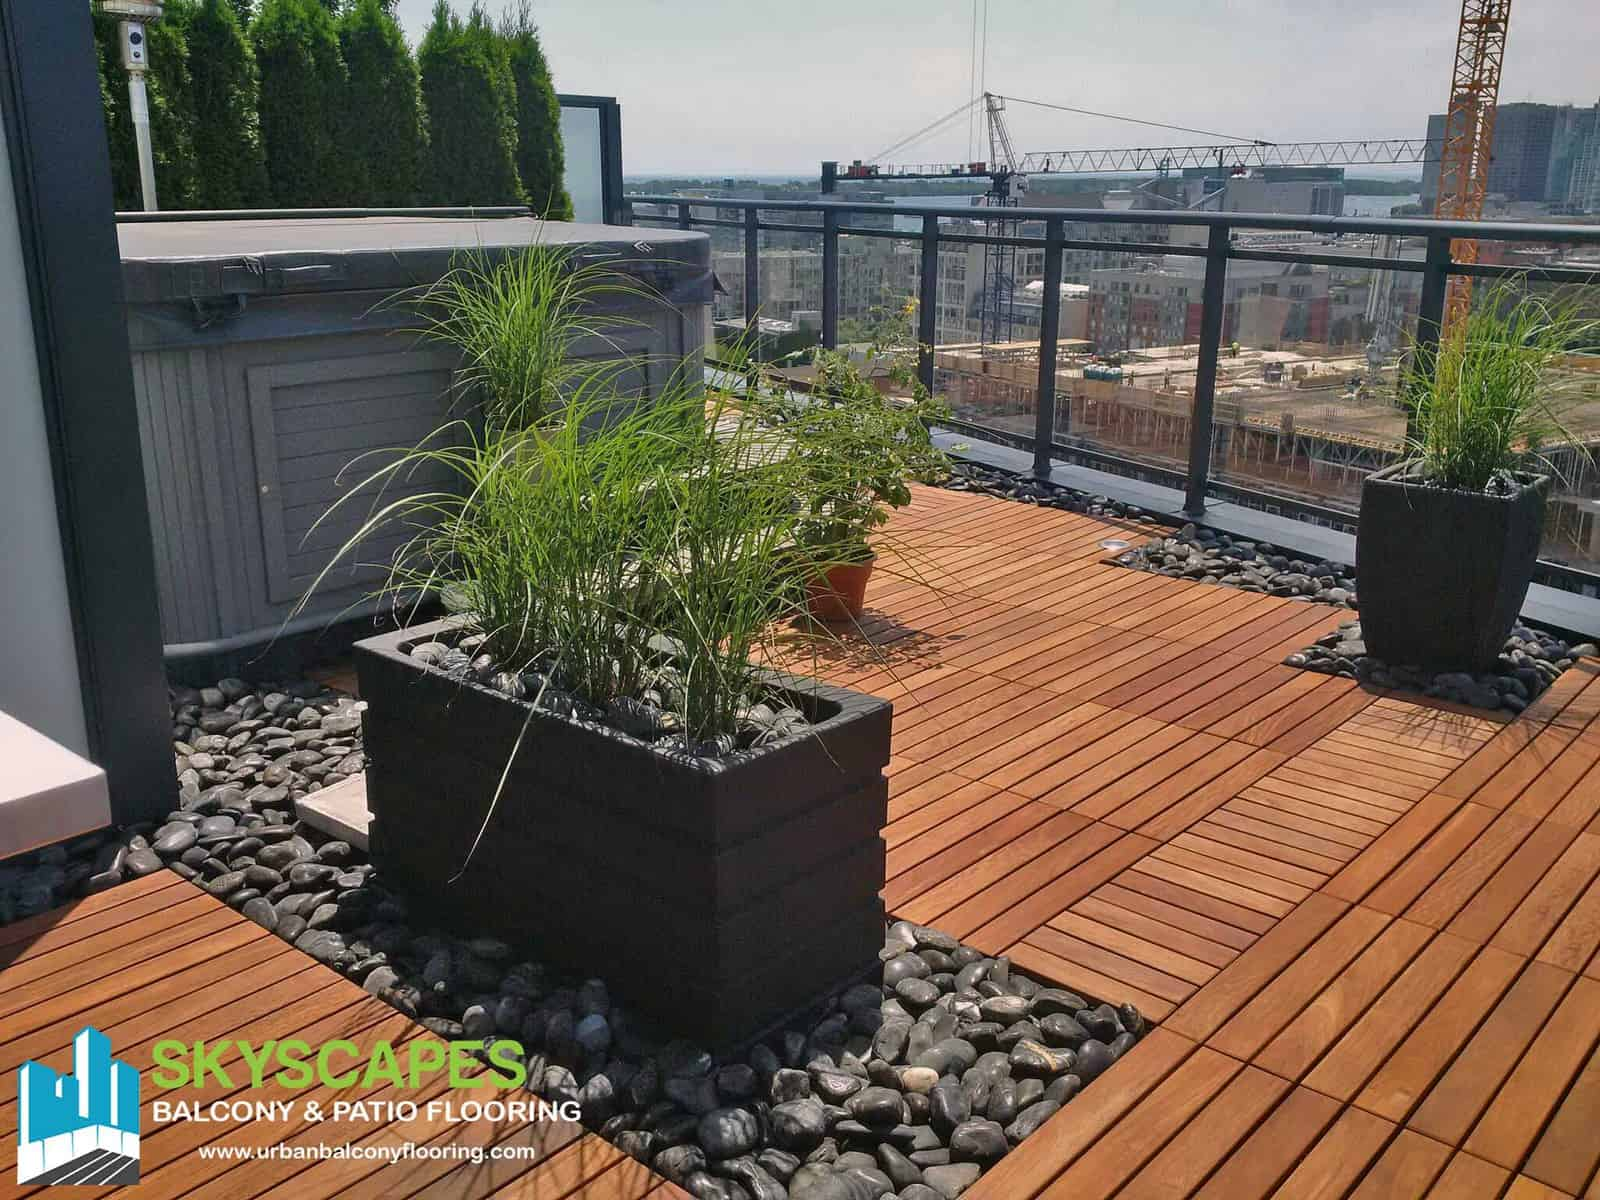 Gorgeous rooftop terrace with Ipe structural wood tiles and dark grey polished rock gardens. Skyscapes green and blue logo at bottom-left of image.